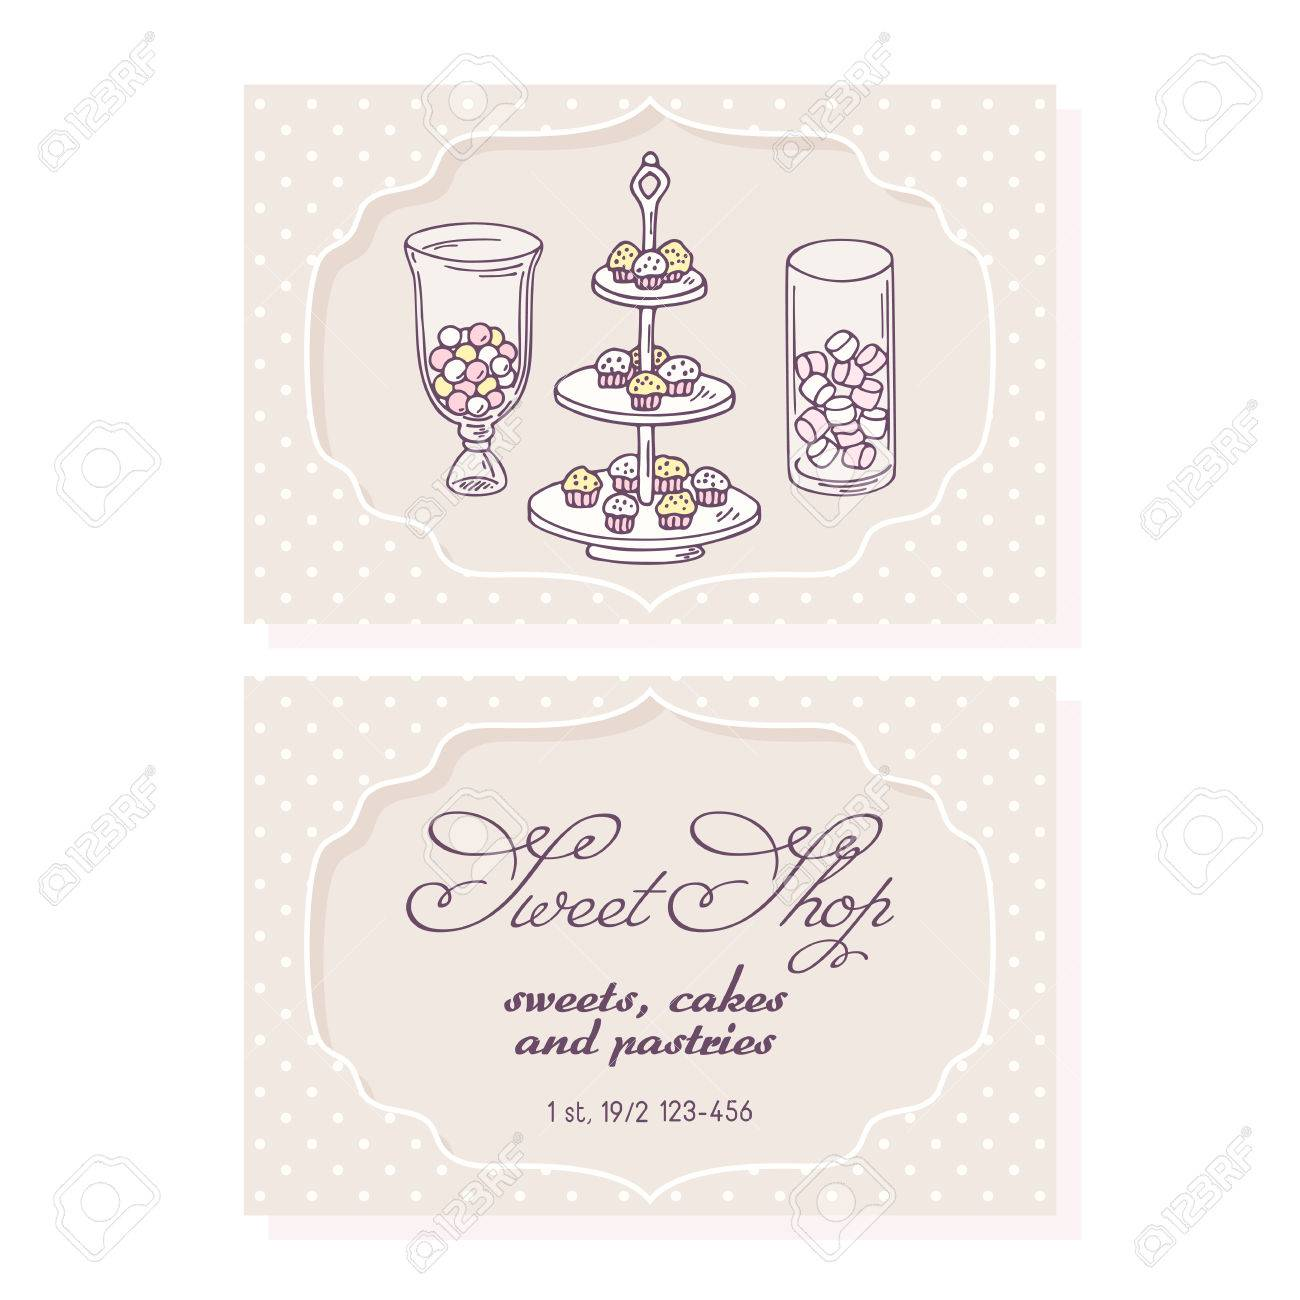 Candy Bar Business Card Template For Pastry Shop. Doodle ...